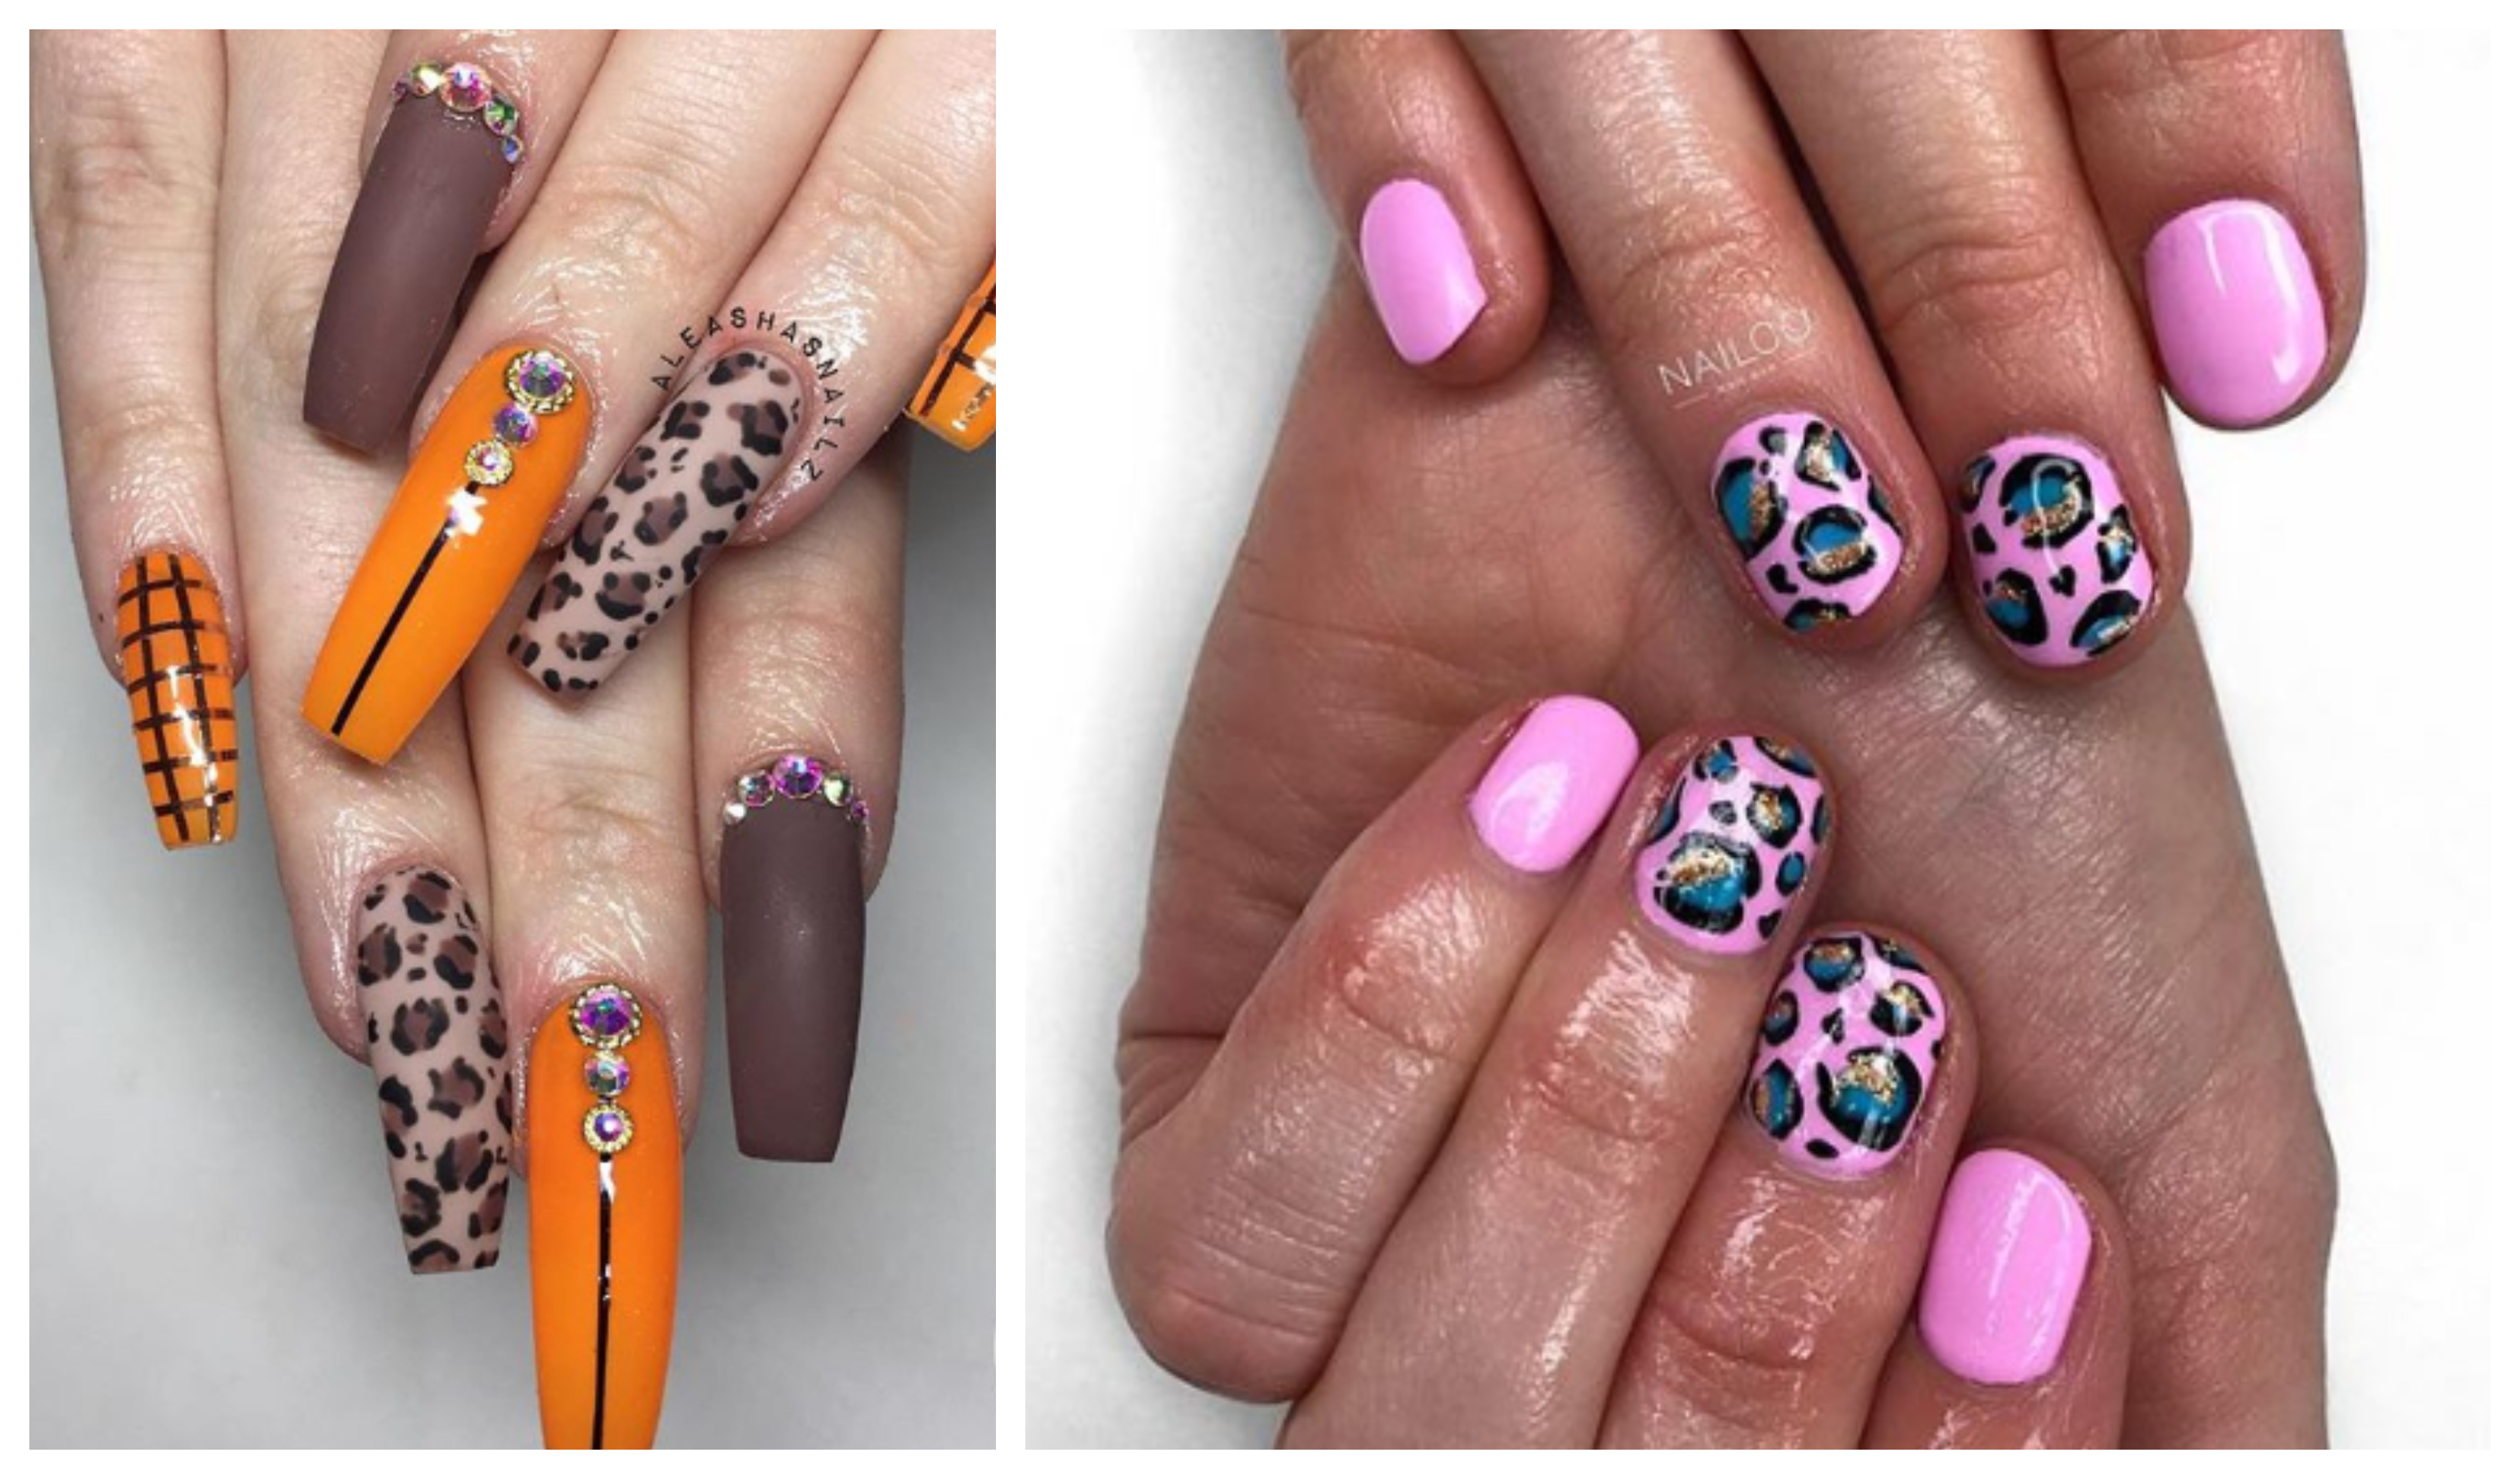 Aberdeen salons create on-trend animal print nails - Society